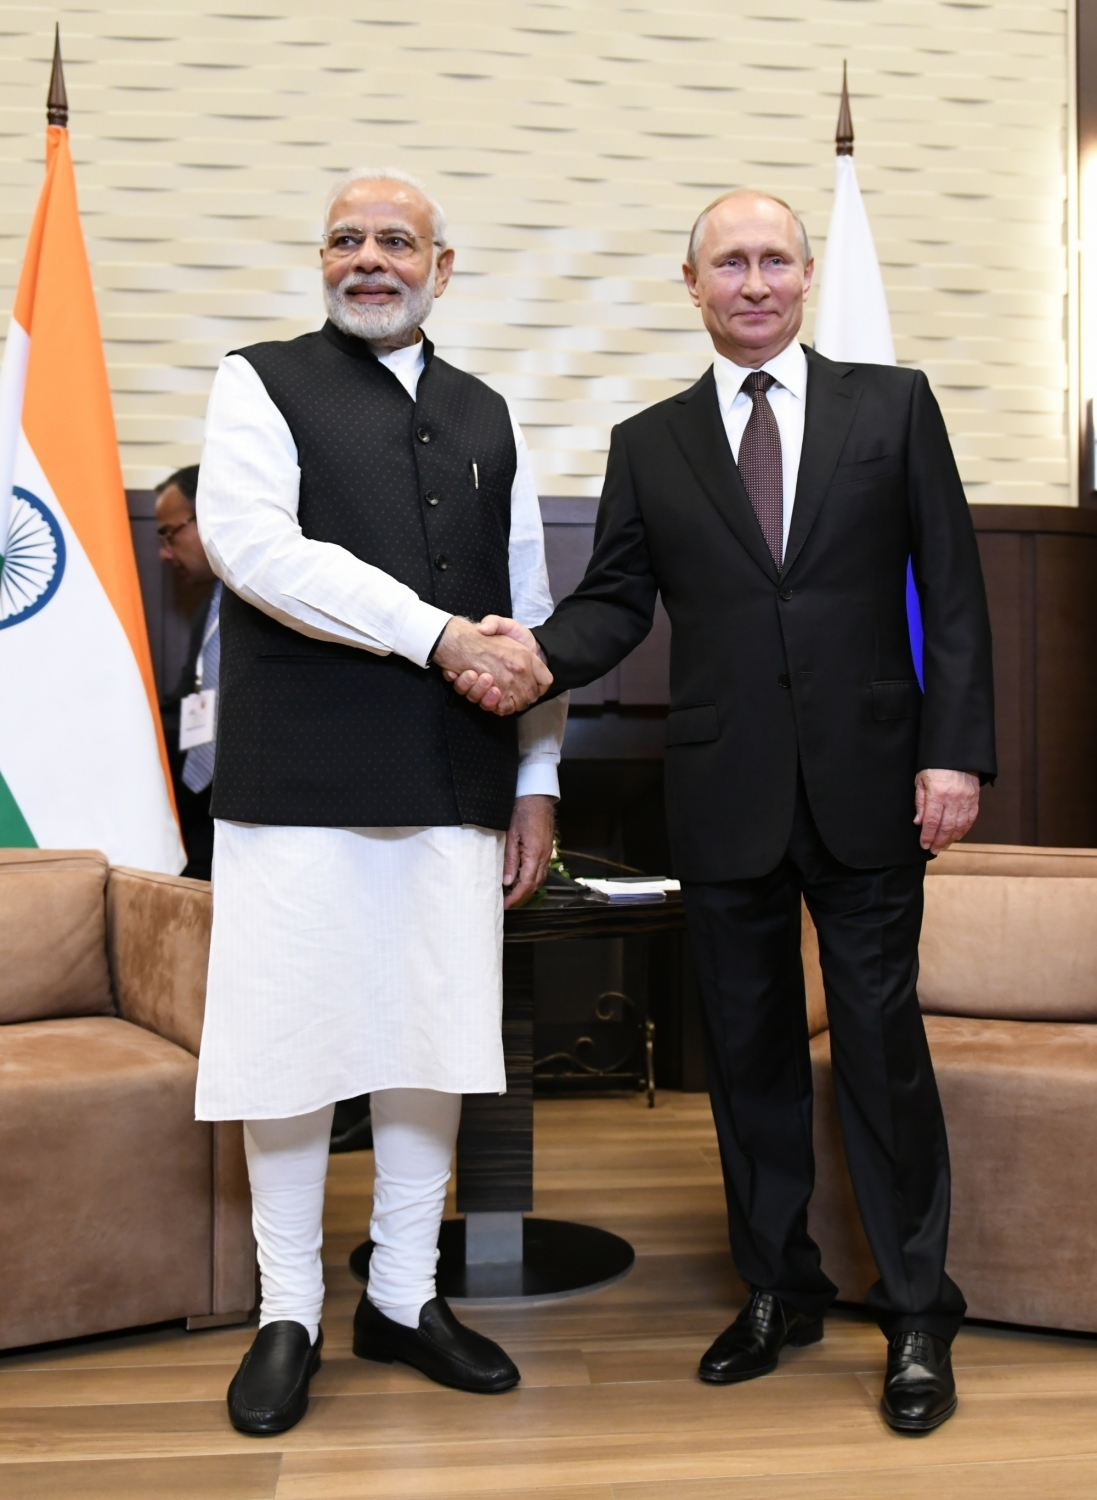 Russia says it supports India, but refuses to discuss bilateral matters in RIC fulfill